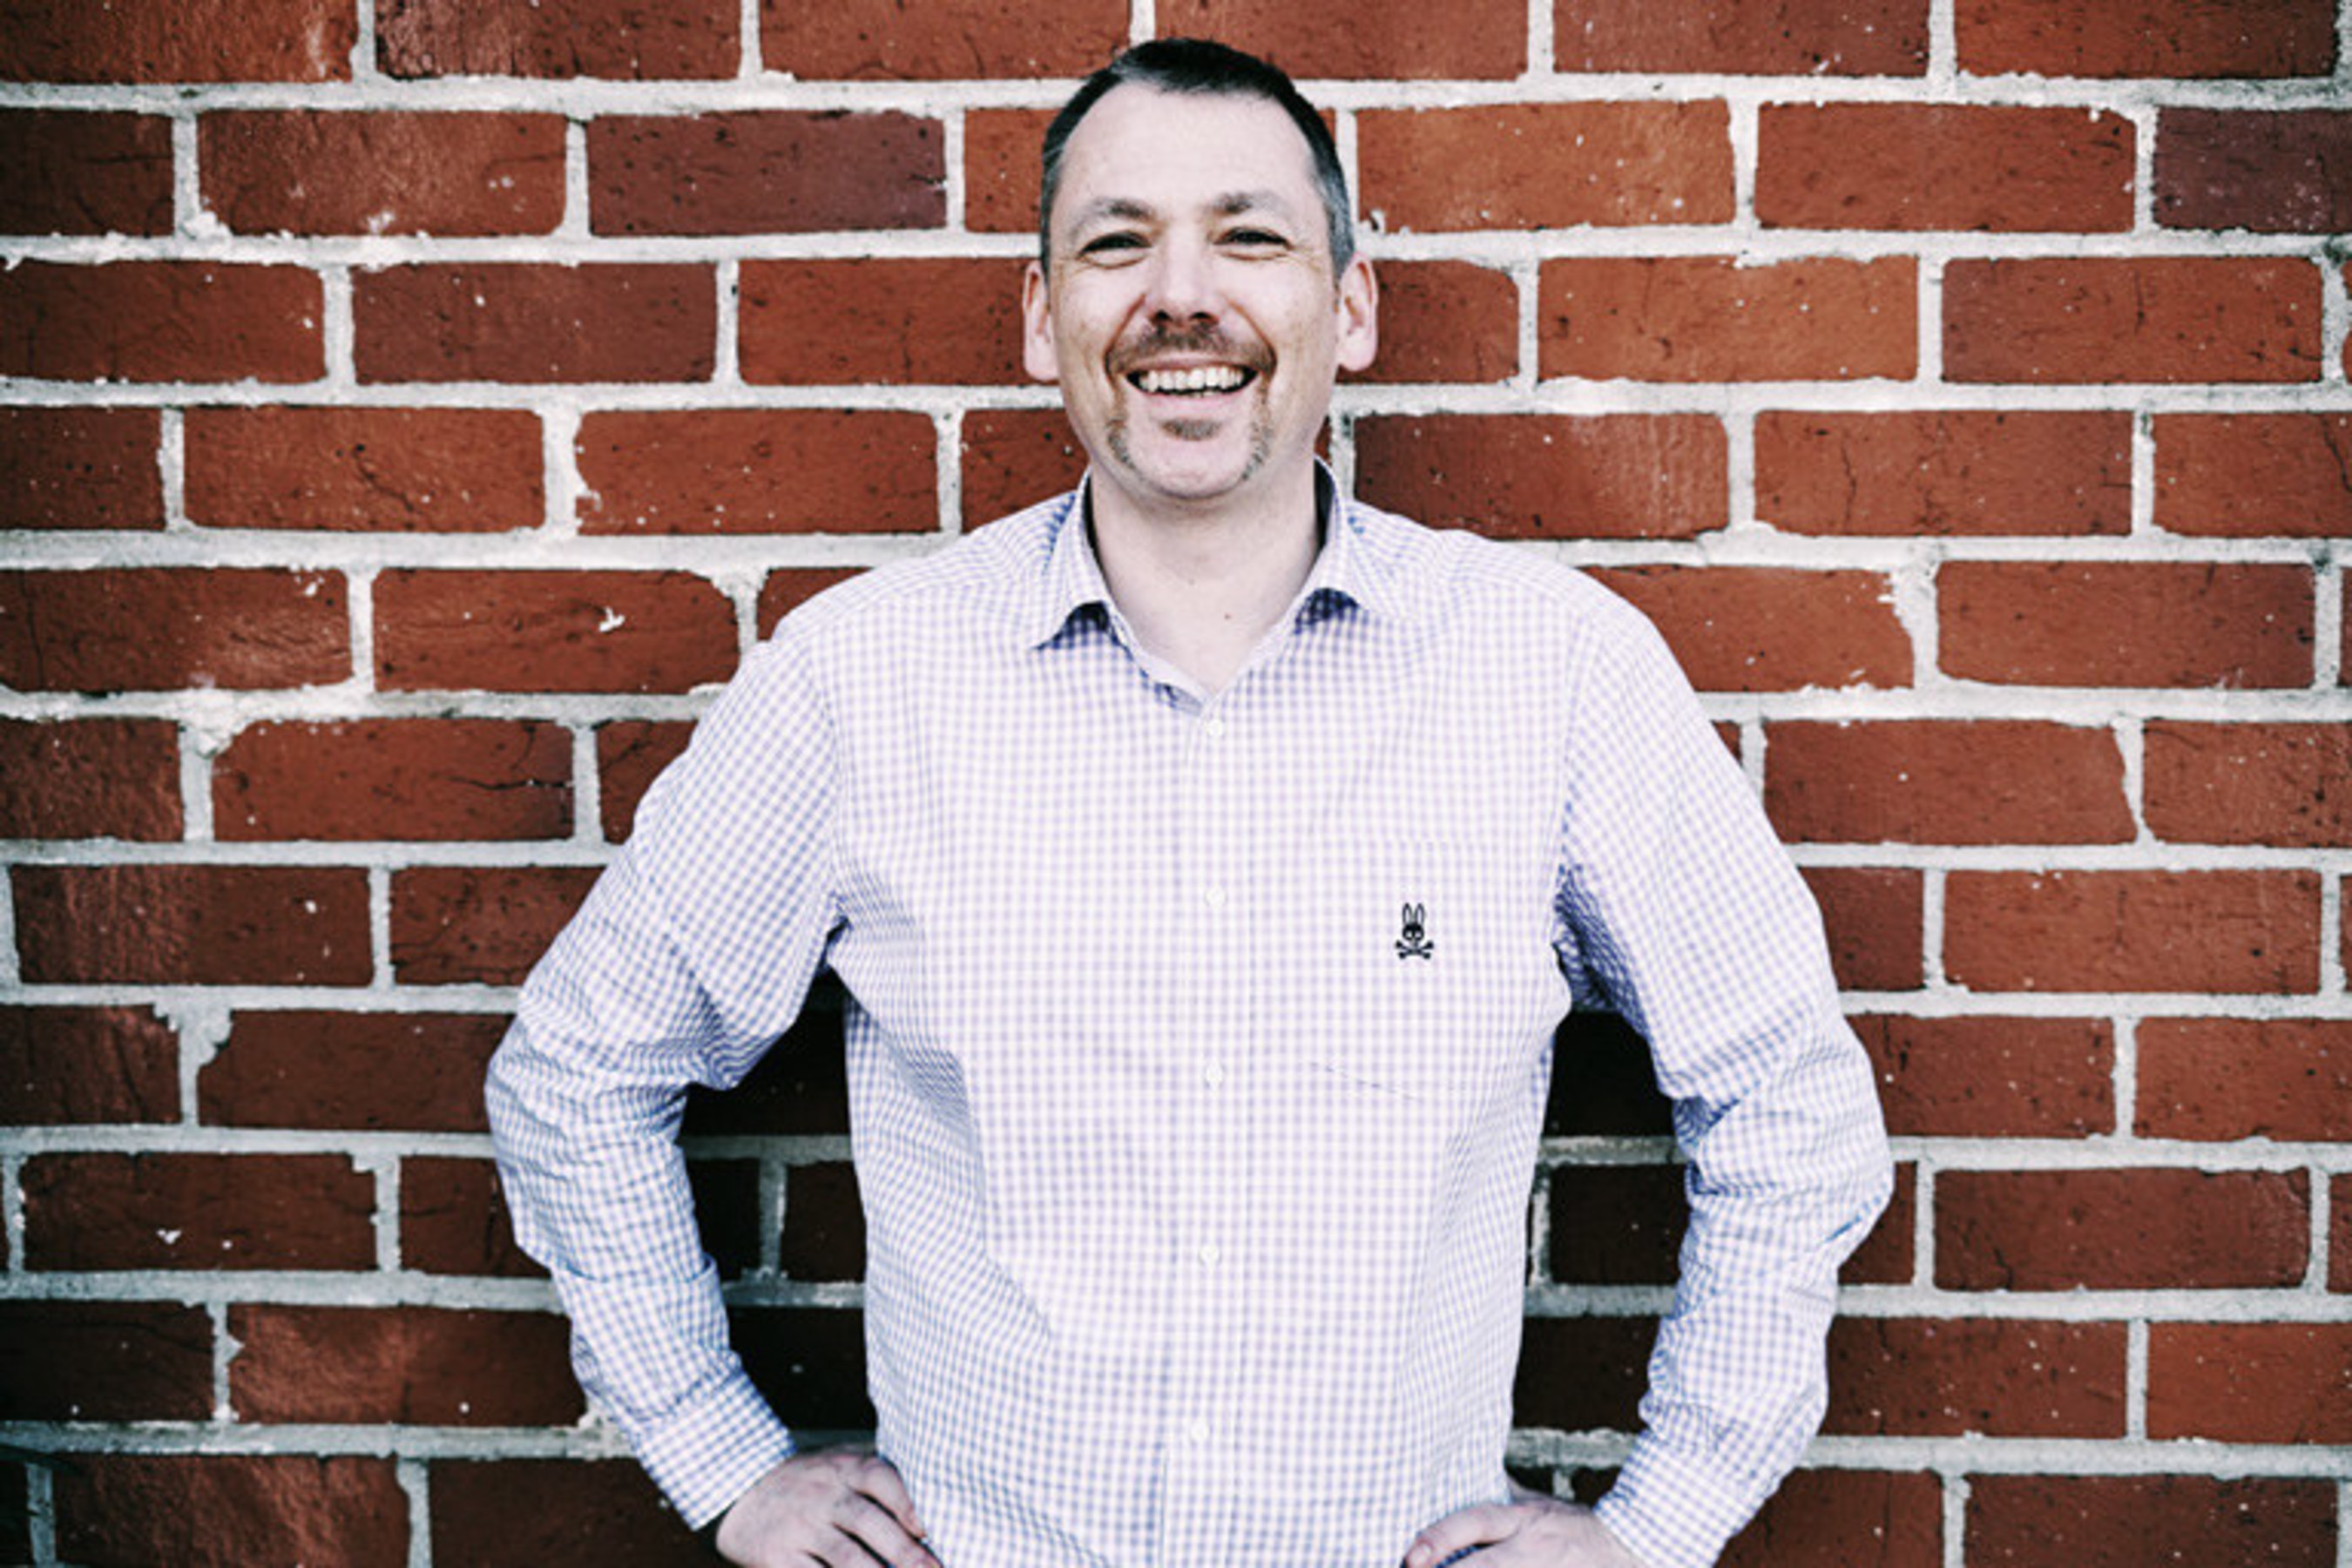 Owen Sharp, newly appointed CEO of the Movember Foundation, has a proven track record of strong leadership and brings with him a wealth of fundraising experience and a deep understanding of the charity sector as a whole, which will serve the organization well as they continue to evolve.